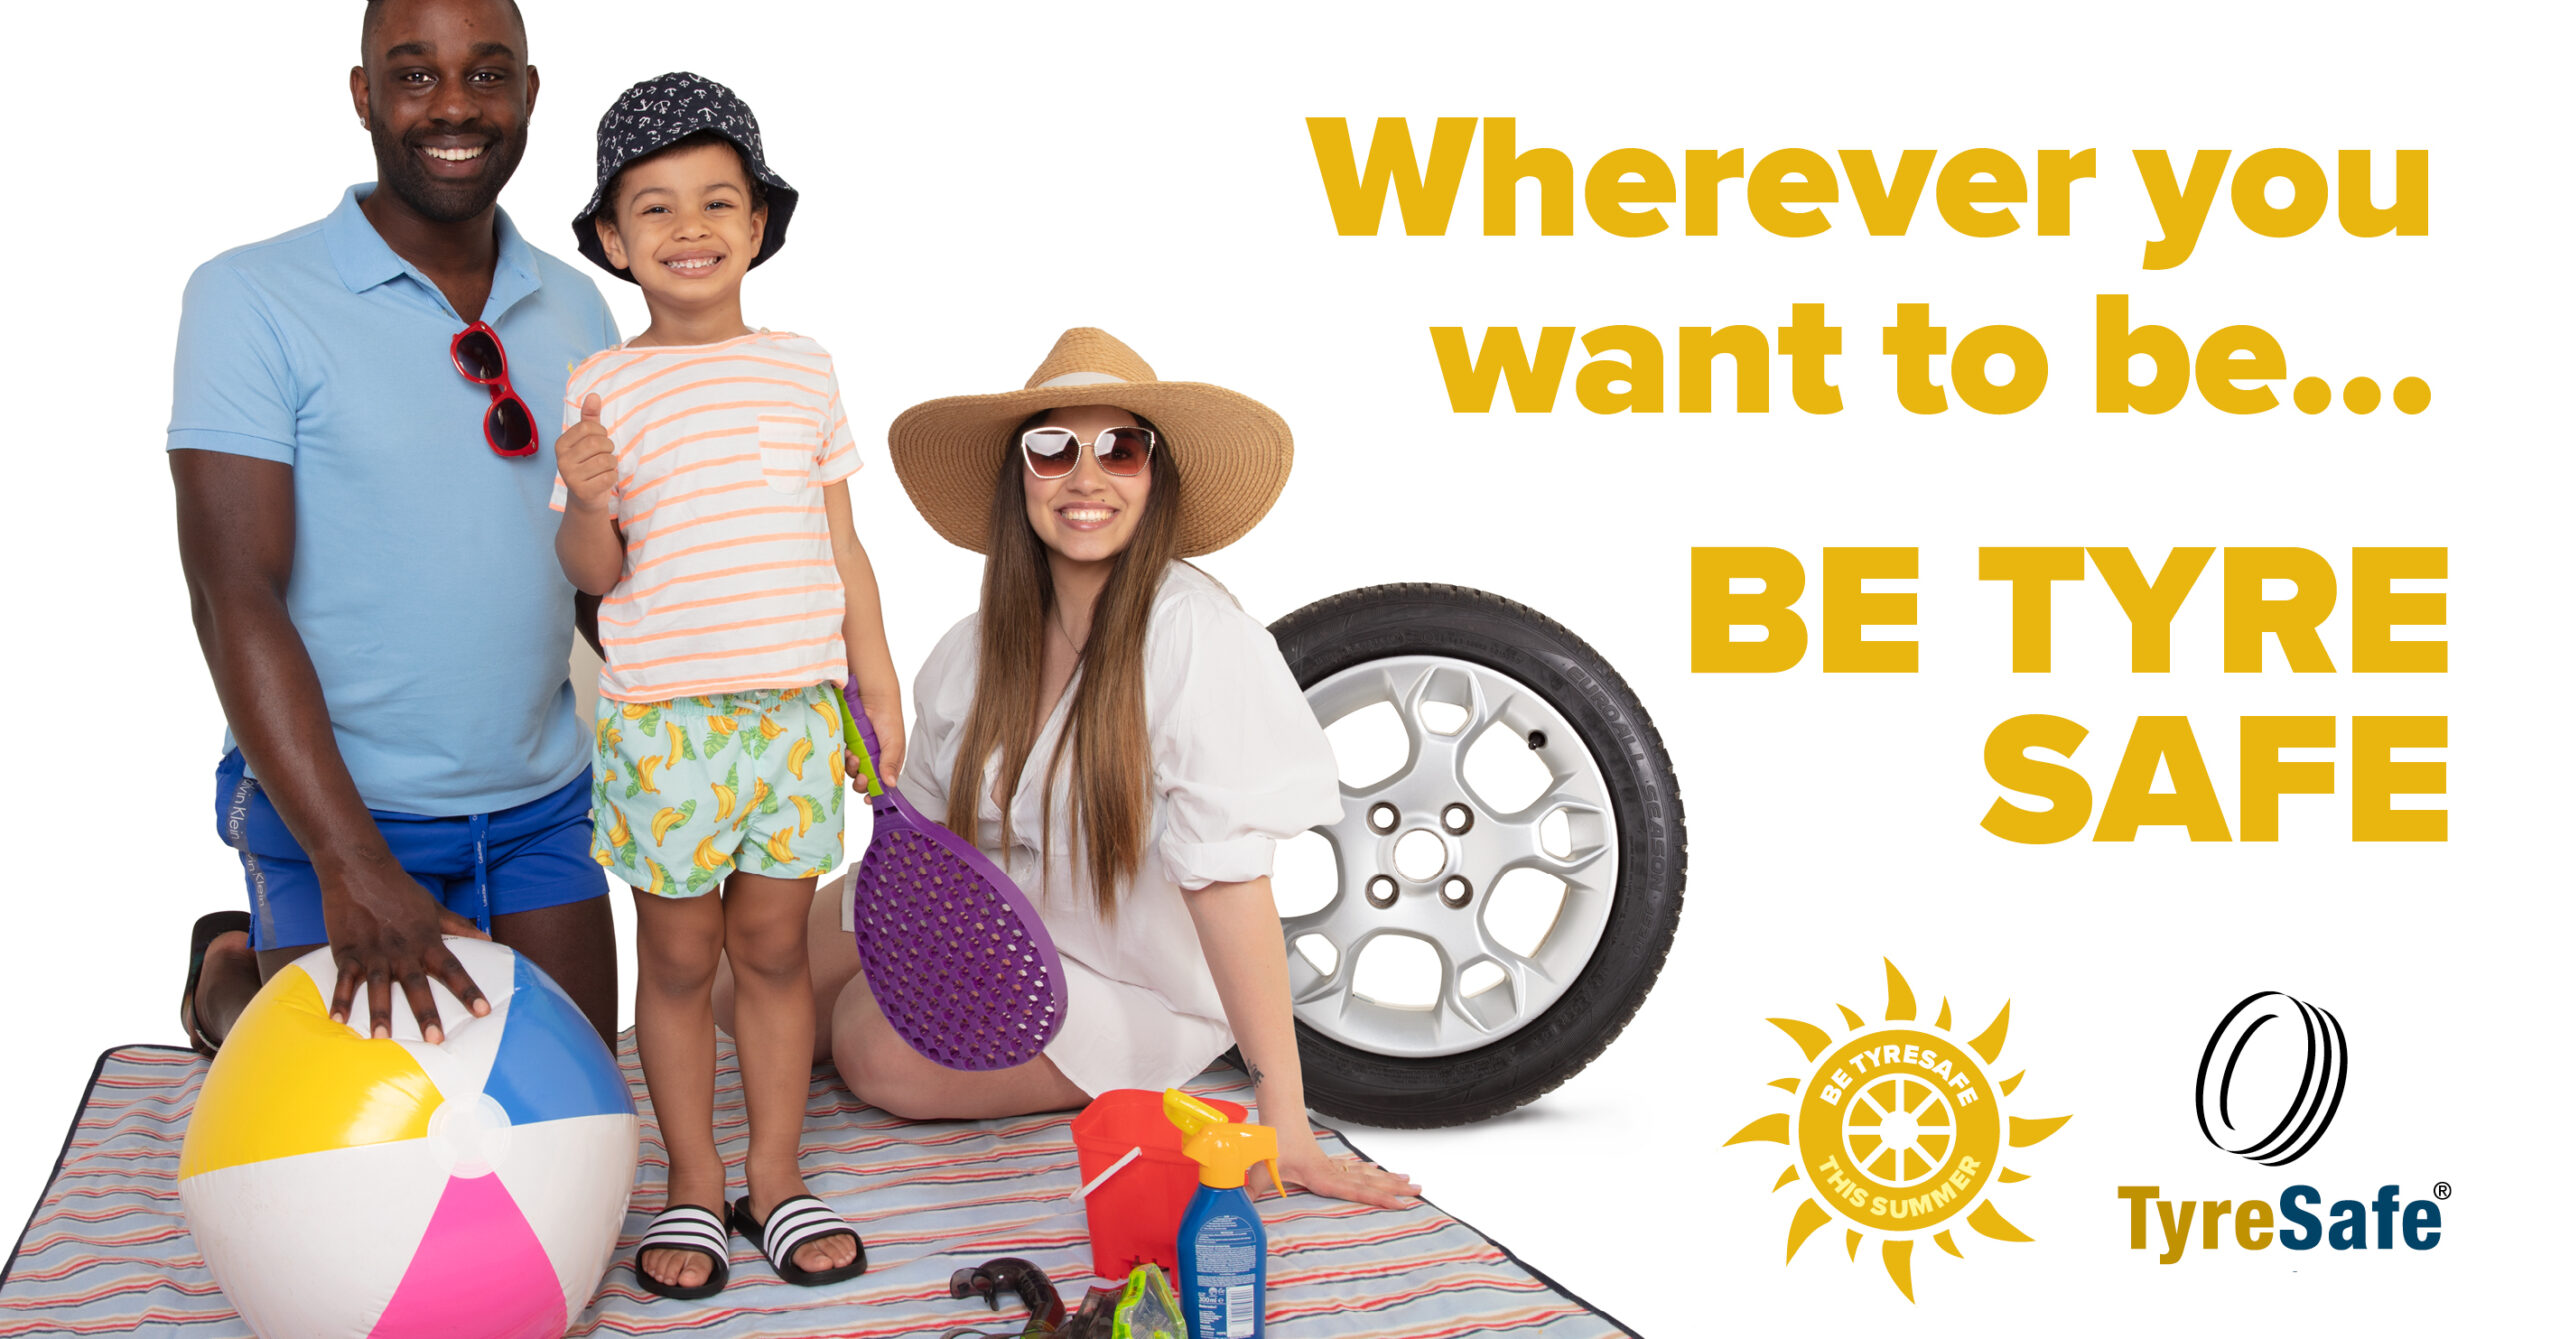 TyreSafe's summer holiday message: wherever you want to be this summer, be tyre safe